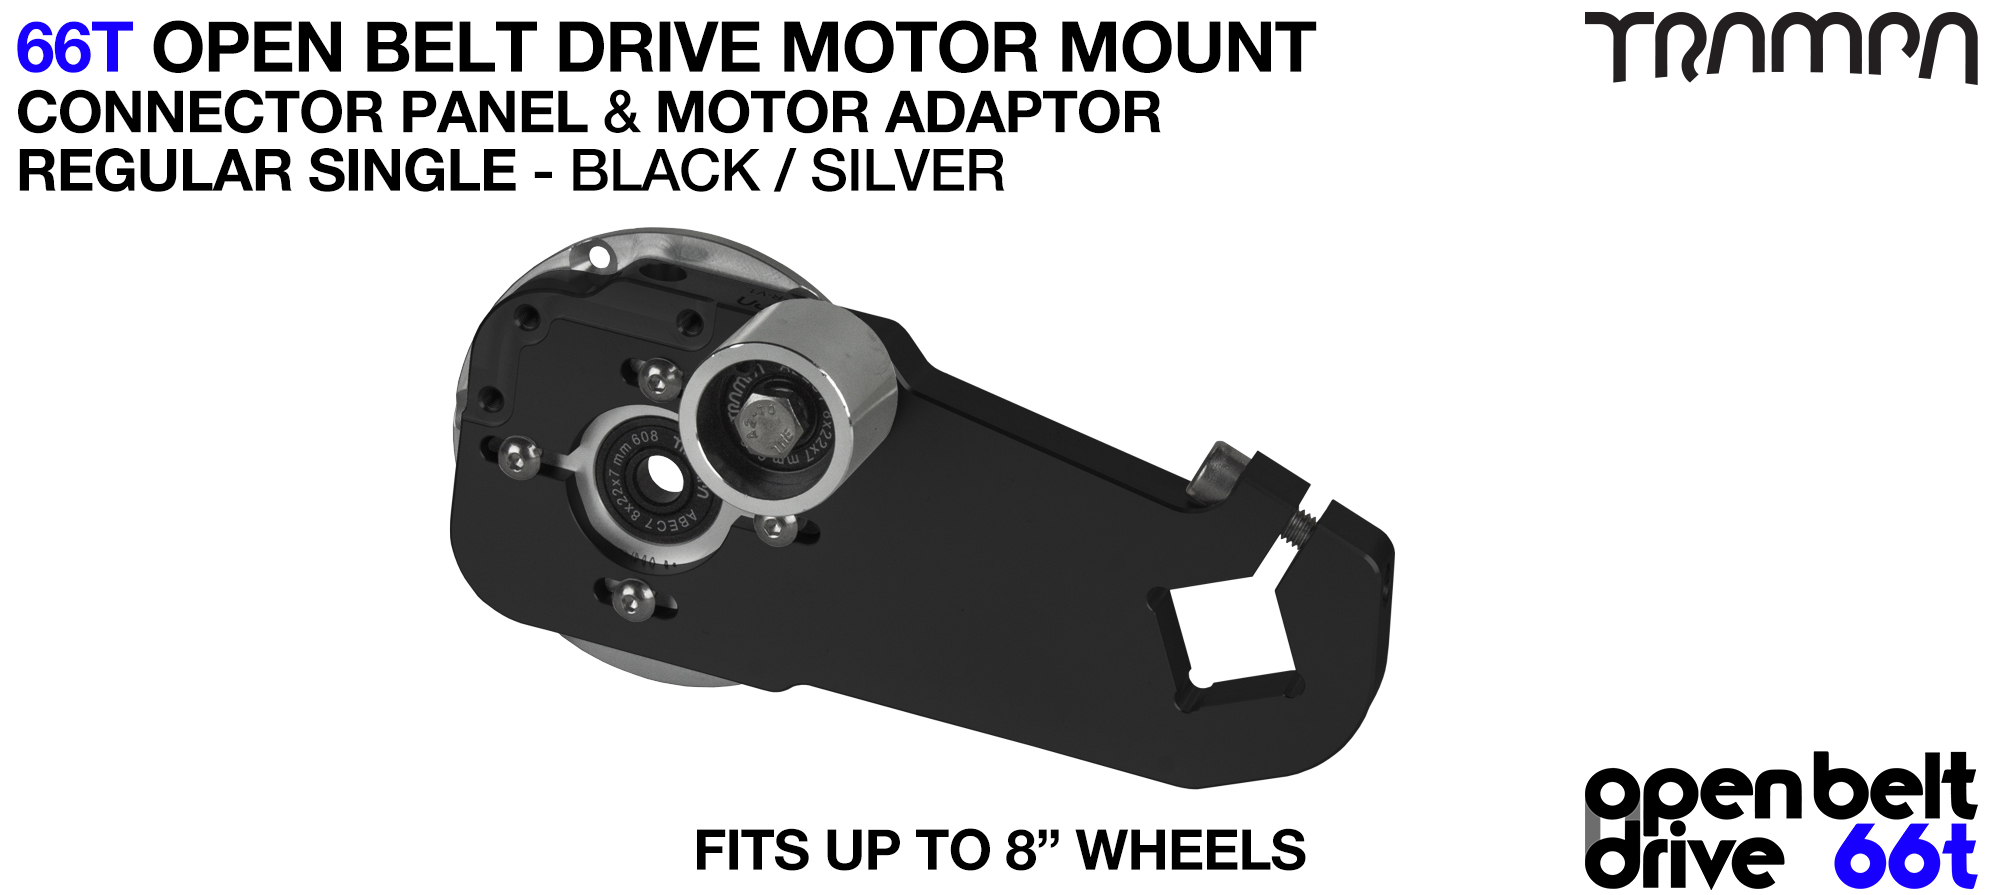 66T OPEN BELT DRIVE Motor Mount & Motor Adaptor - SINGLE BLACK